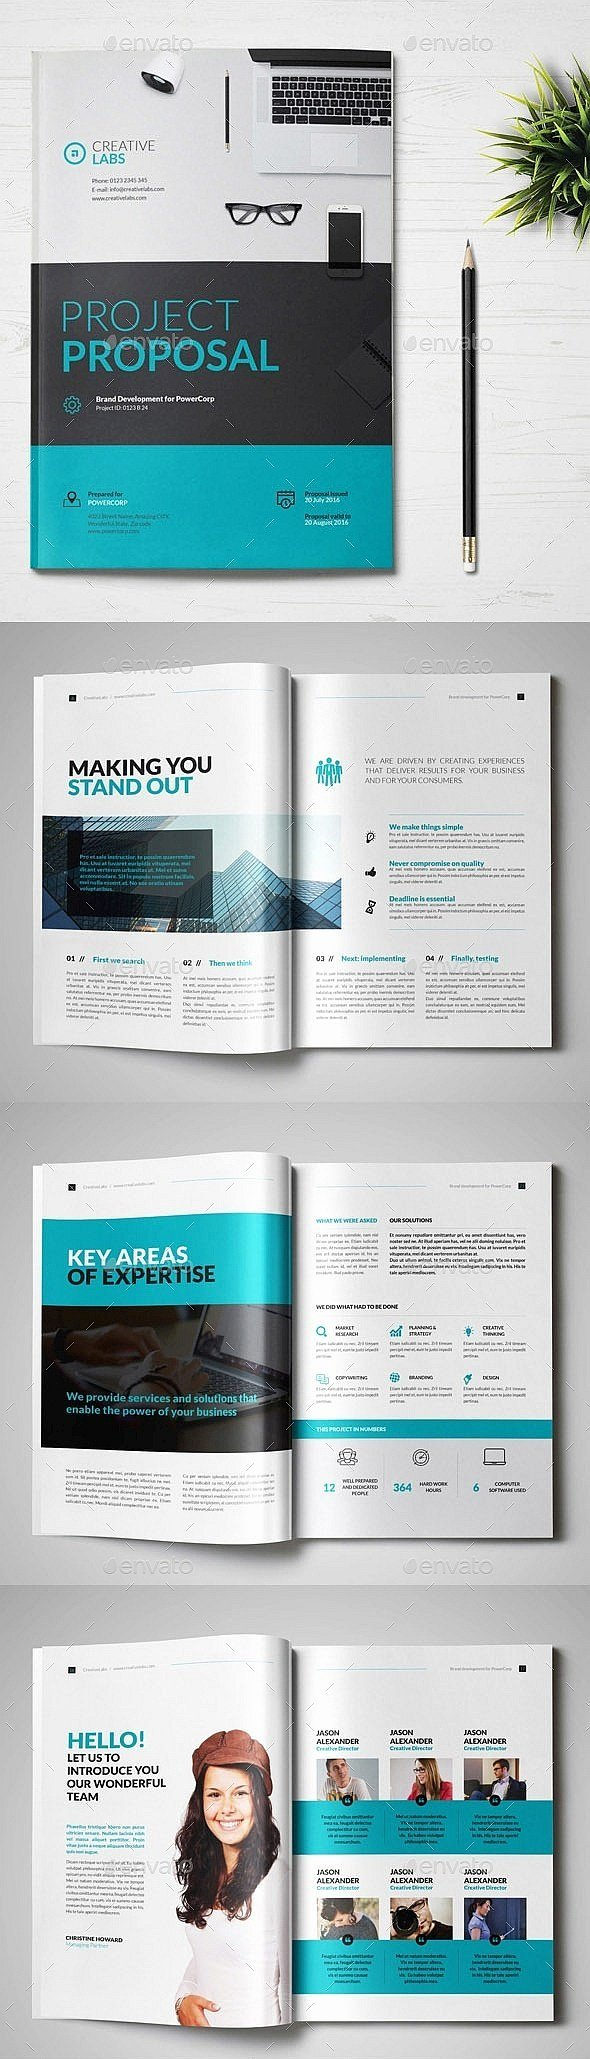 Indesign Business Plan Template Best Of 30 Indesign Business Proposal Templates